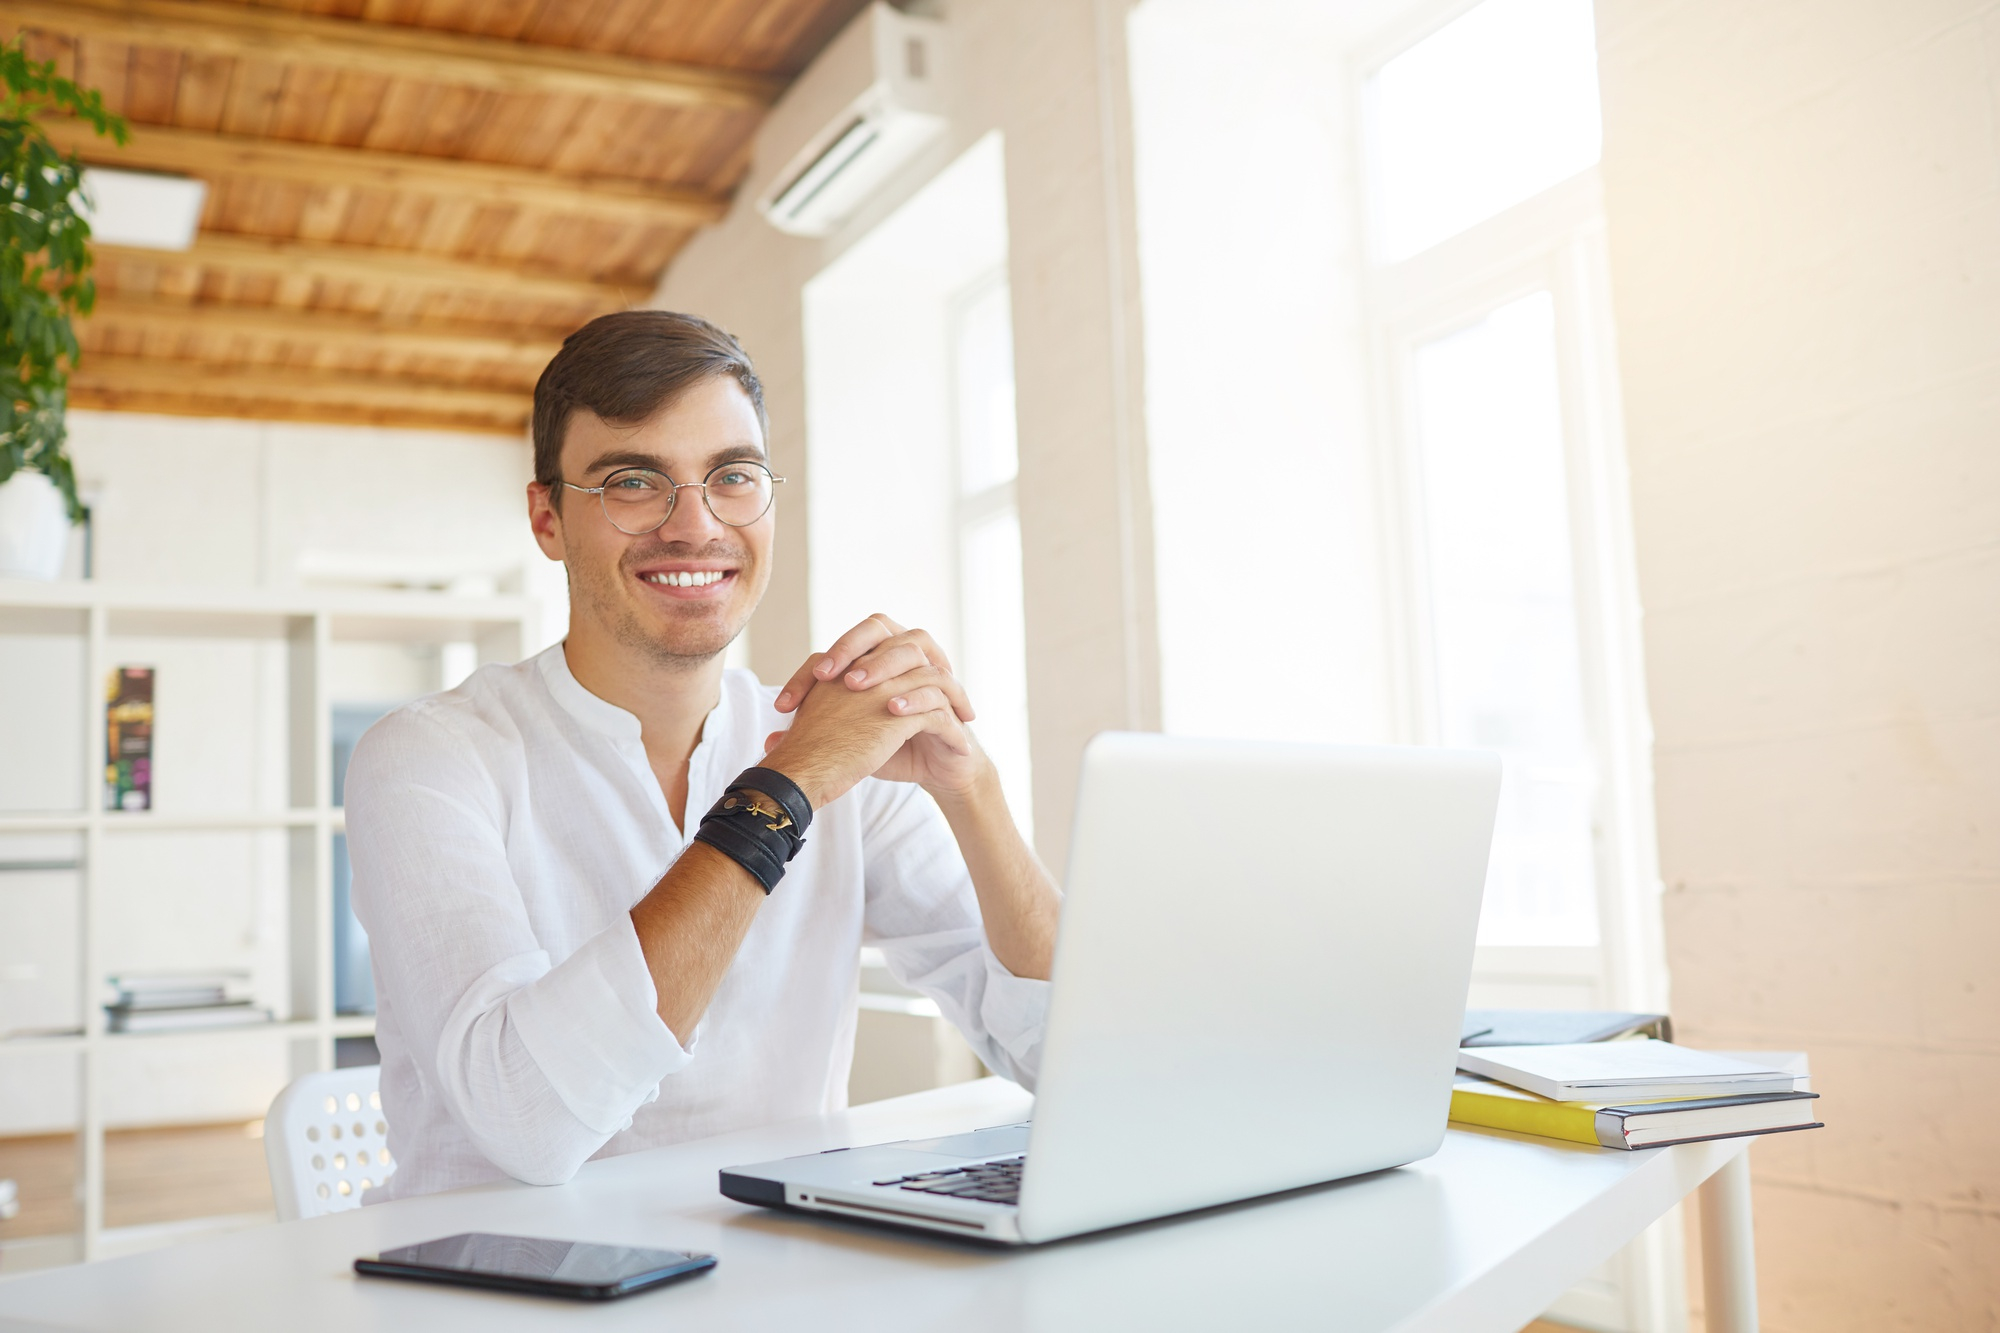 Setting the stage for your online meeting